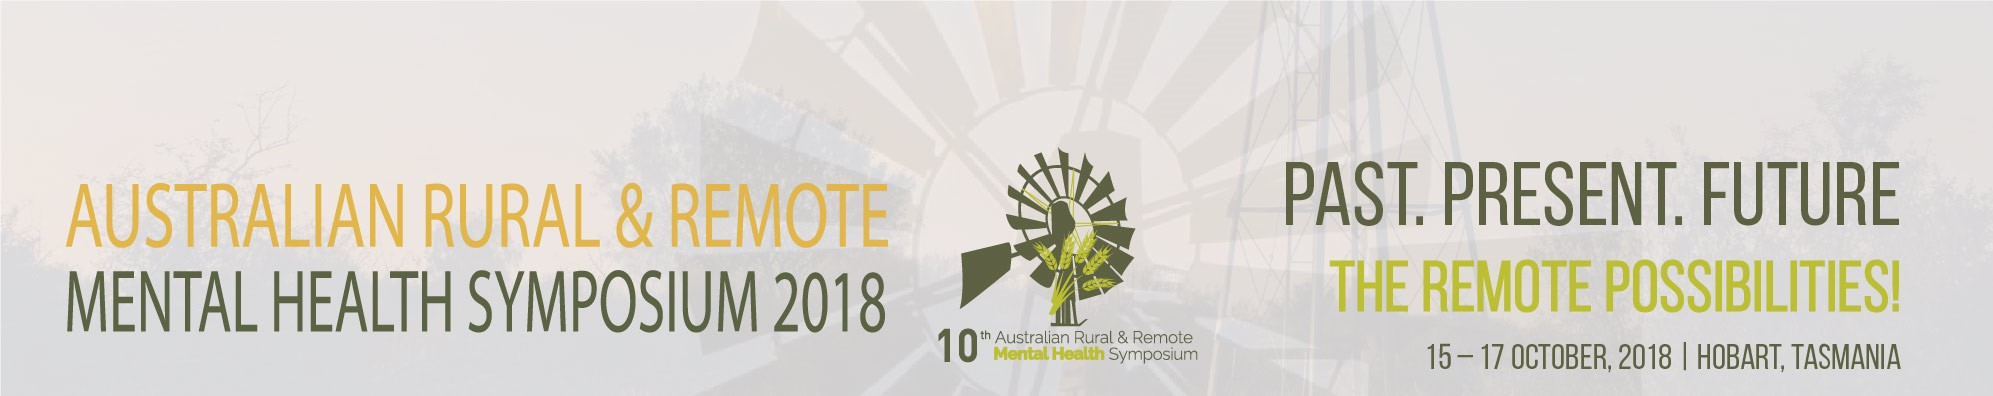 Australian Rural & Remote Mental Health Symposium banner